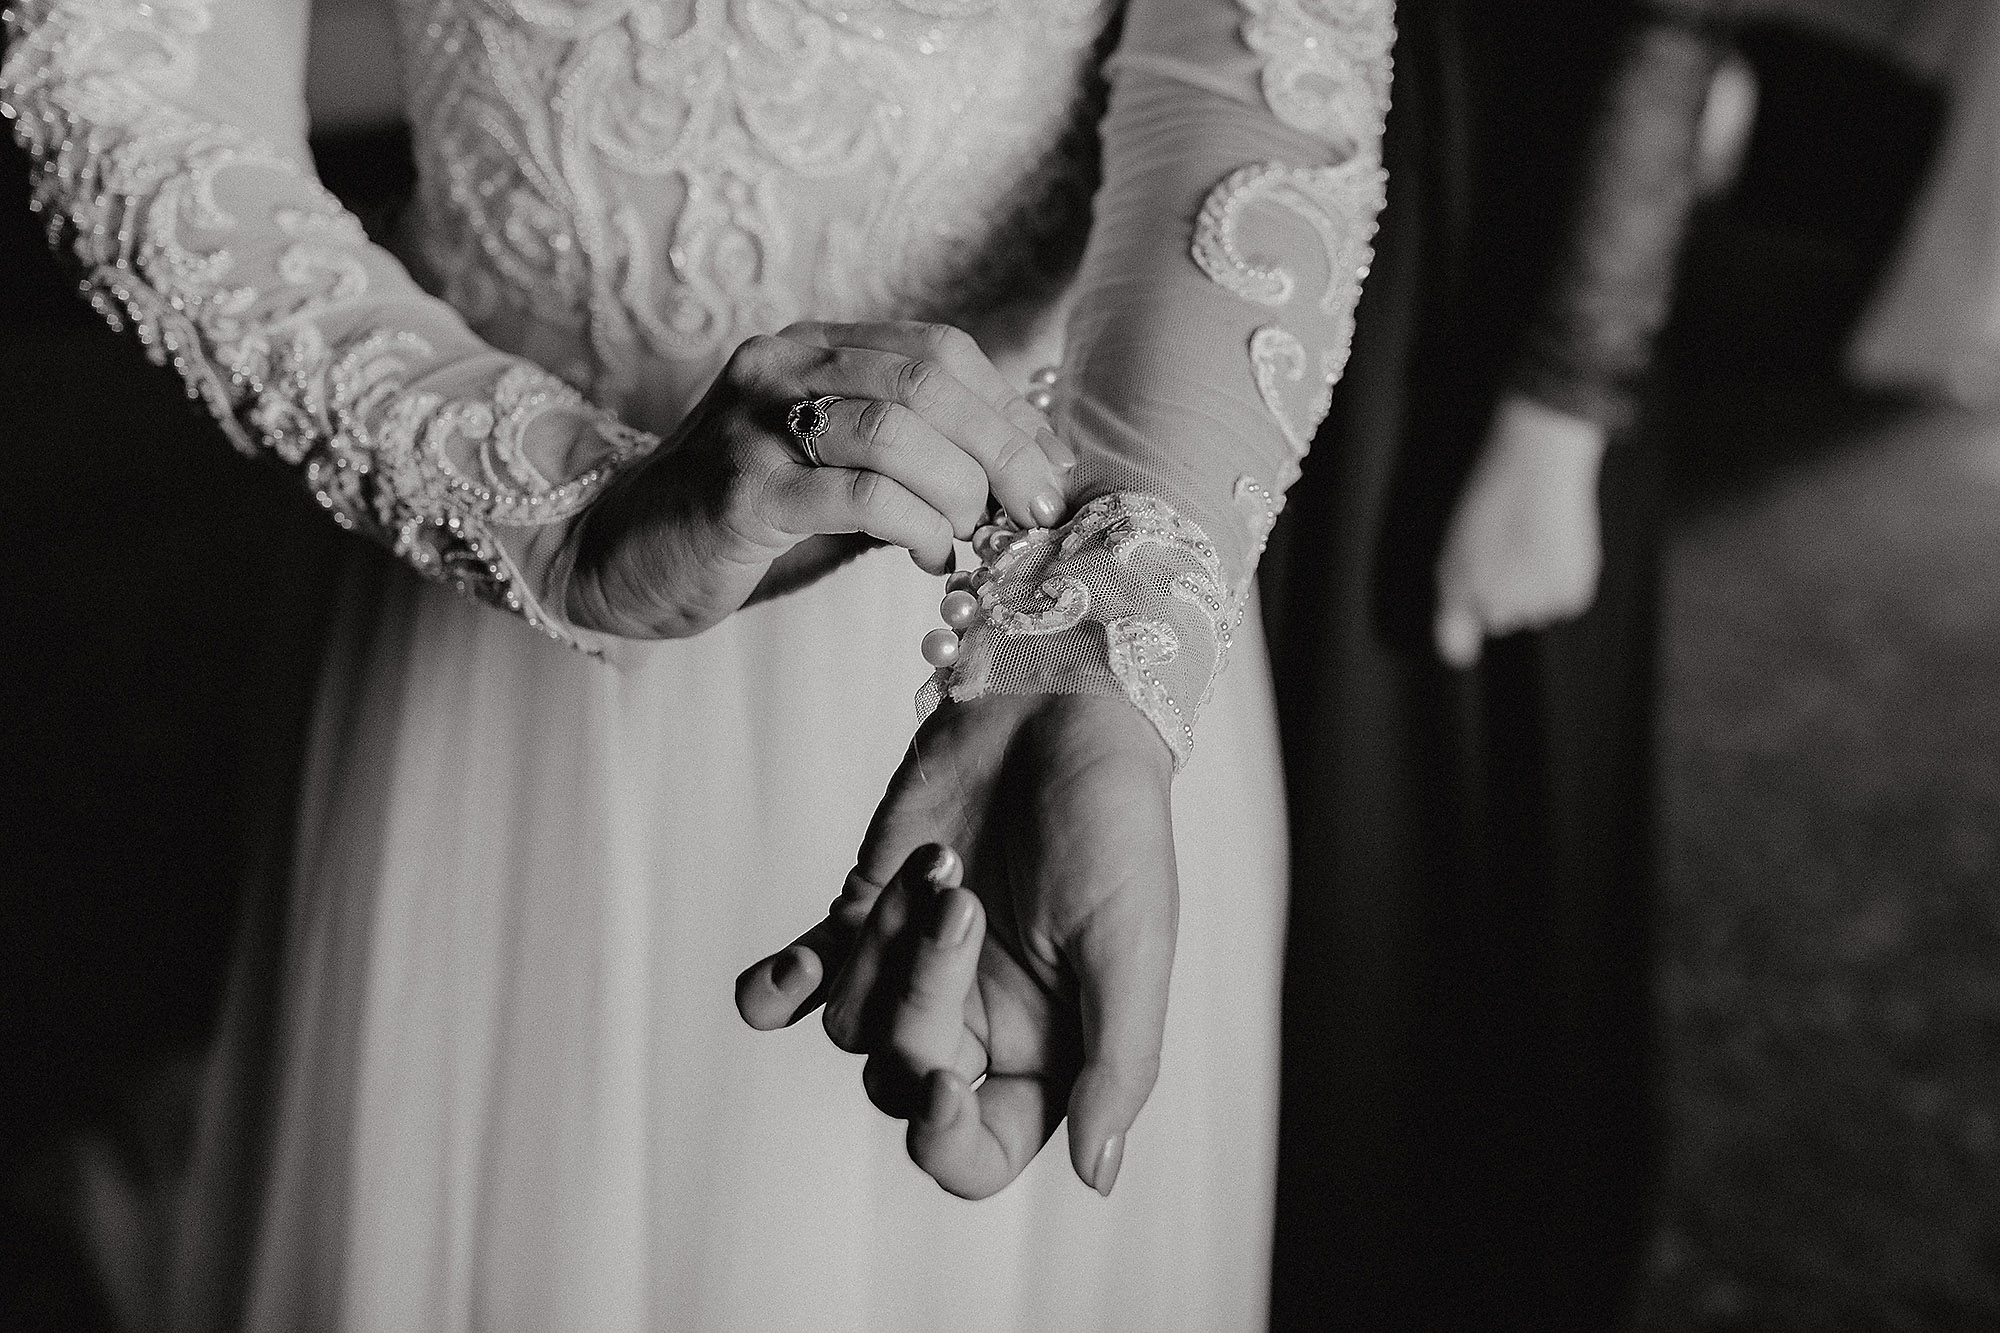 bride wedding dress lace detail while getting dressed Christchurch Wedding Photographer